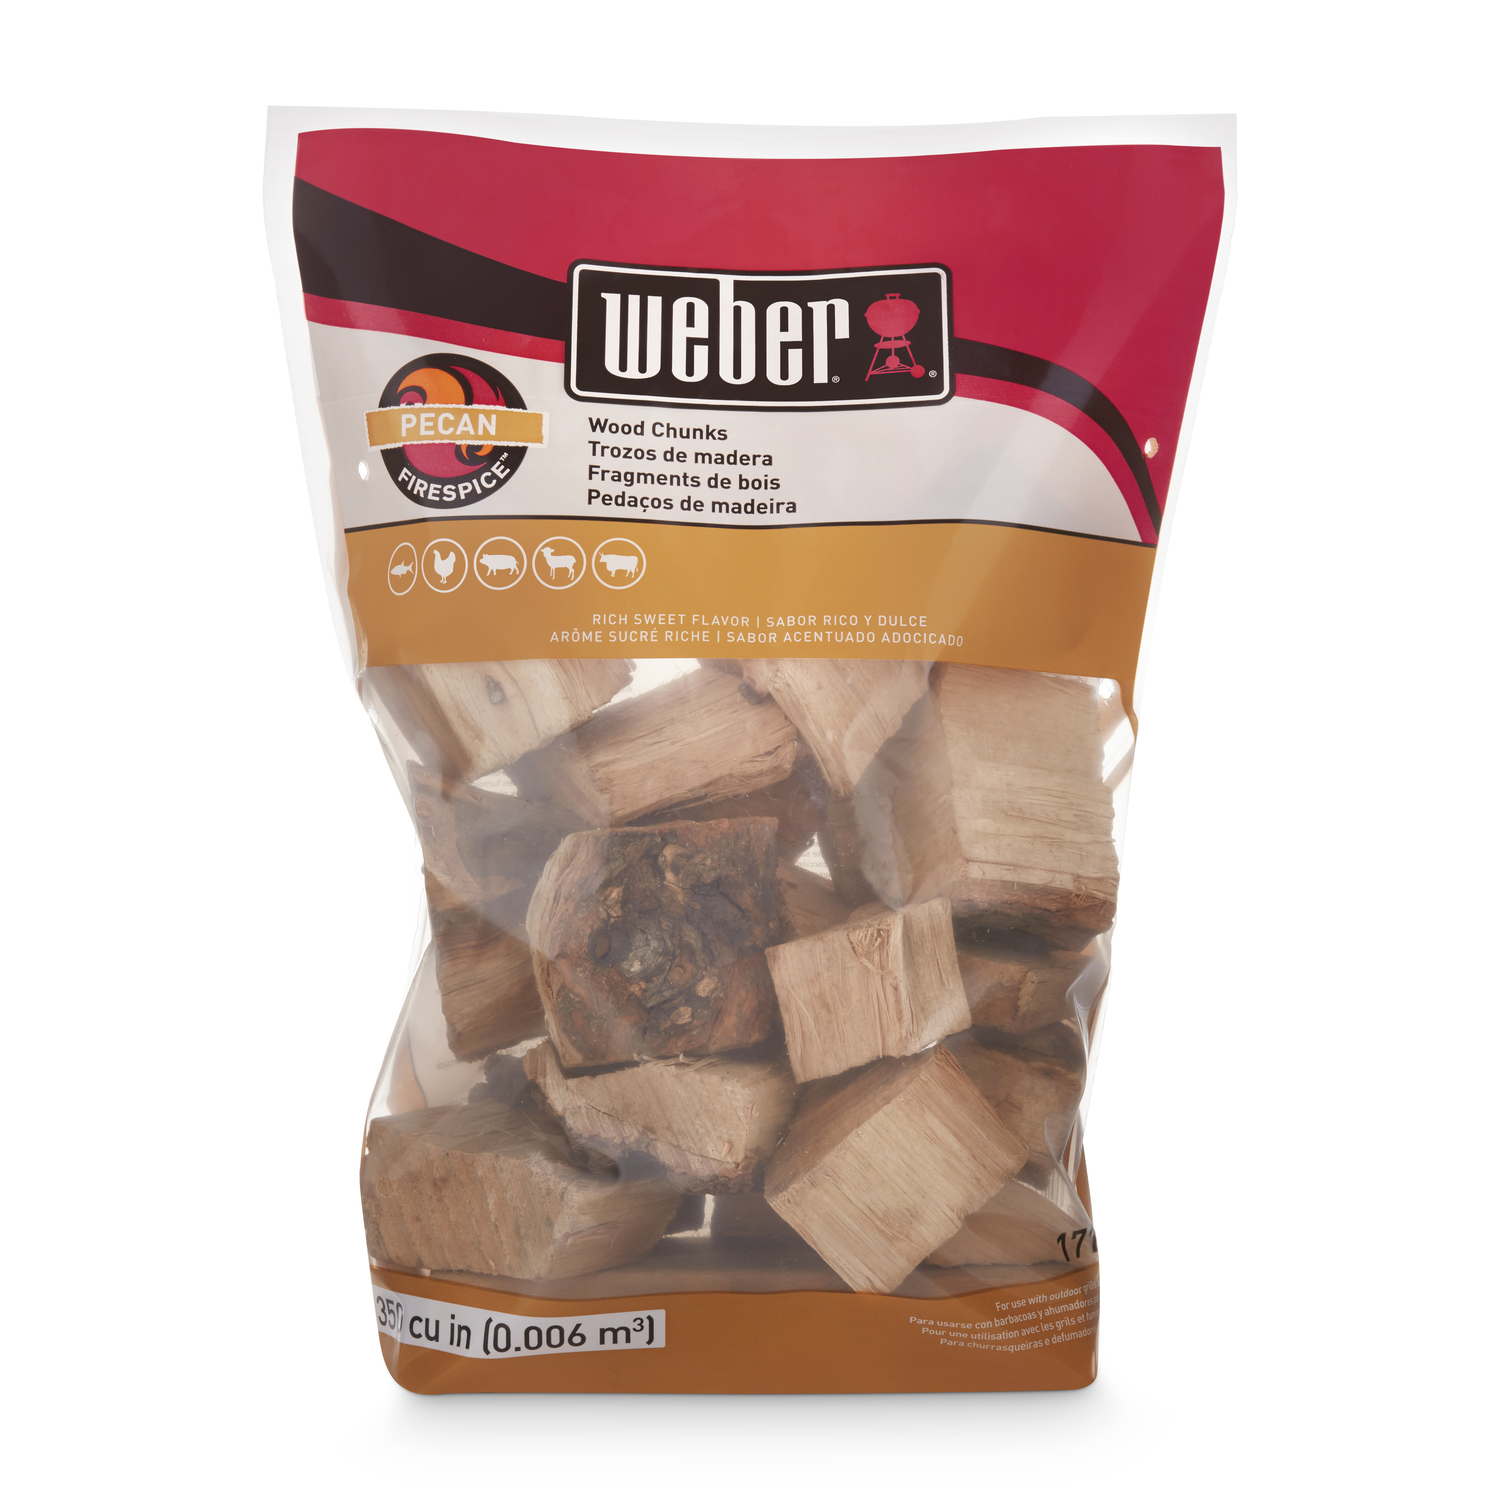 Weber  Firespice  Pecan  Wood Smoking Chunks  350